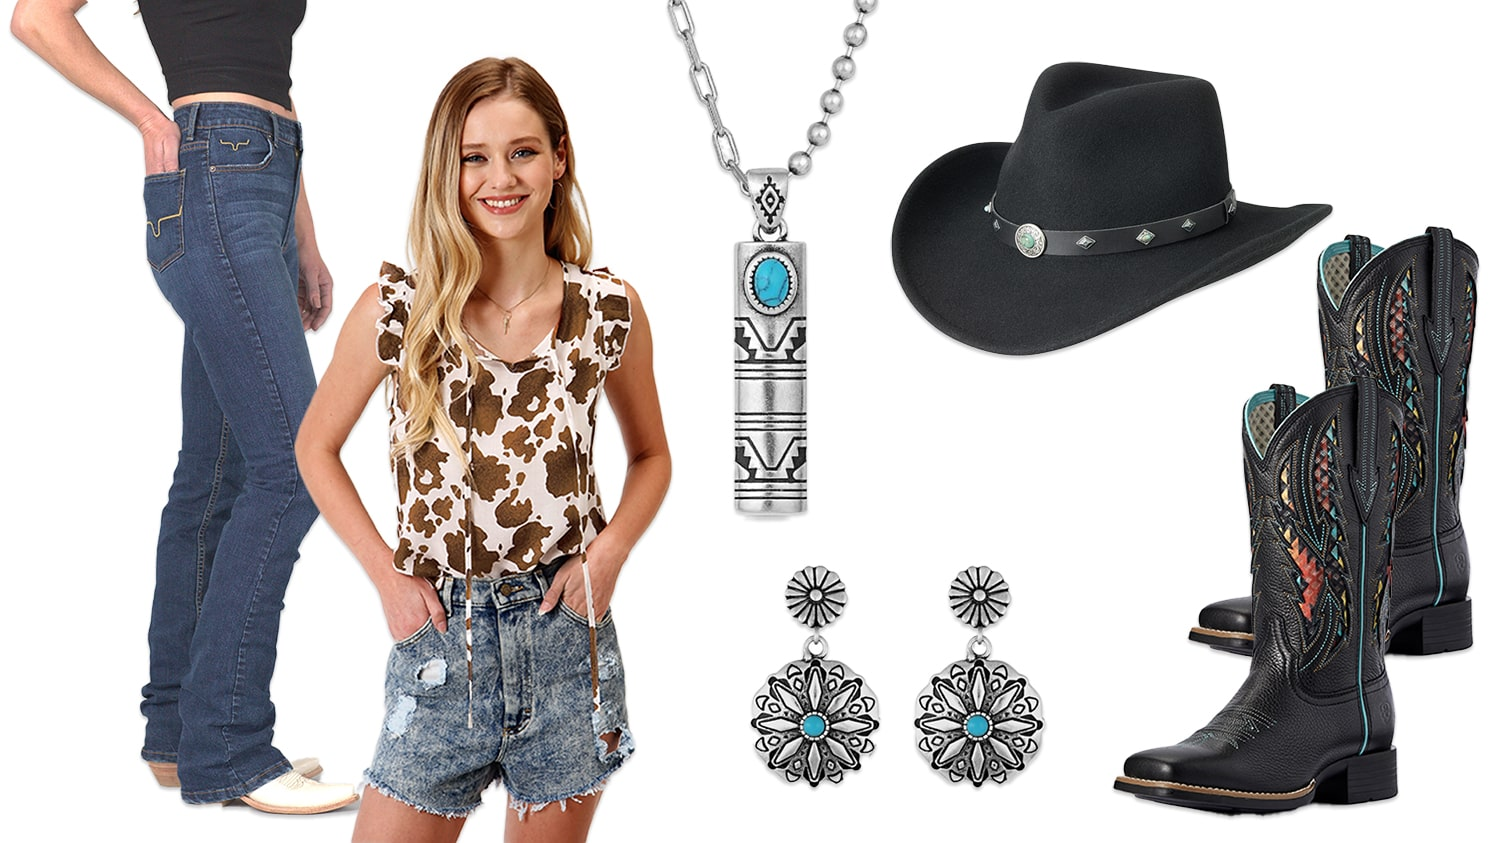 Dressing for the Summer - Cowgirl Vibes